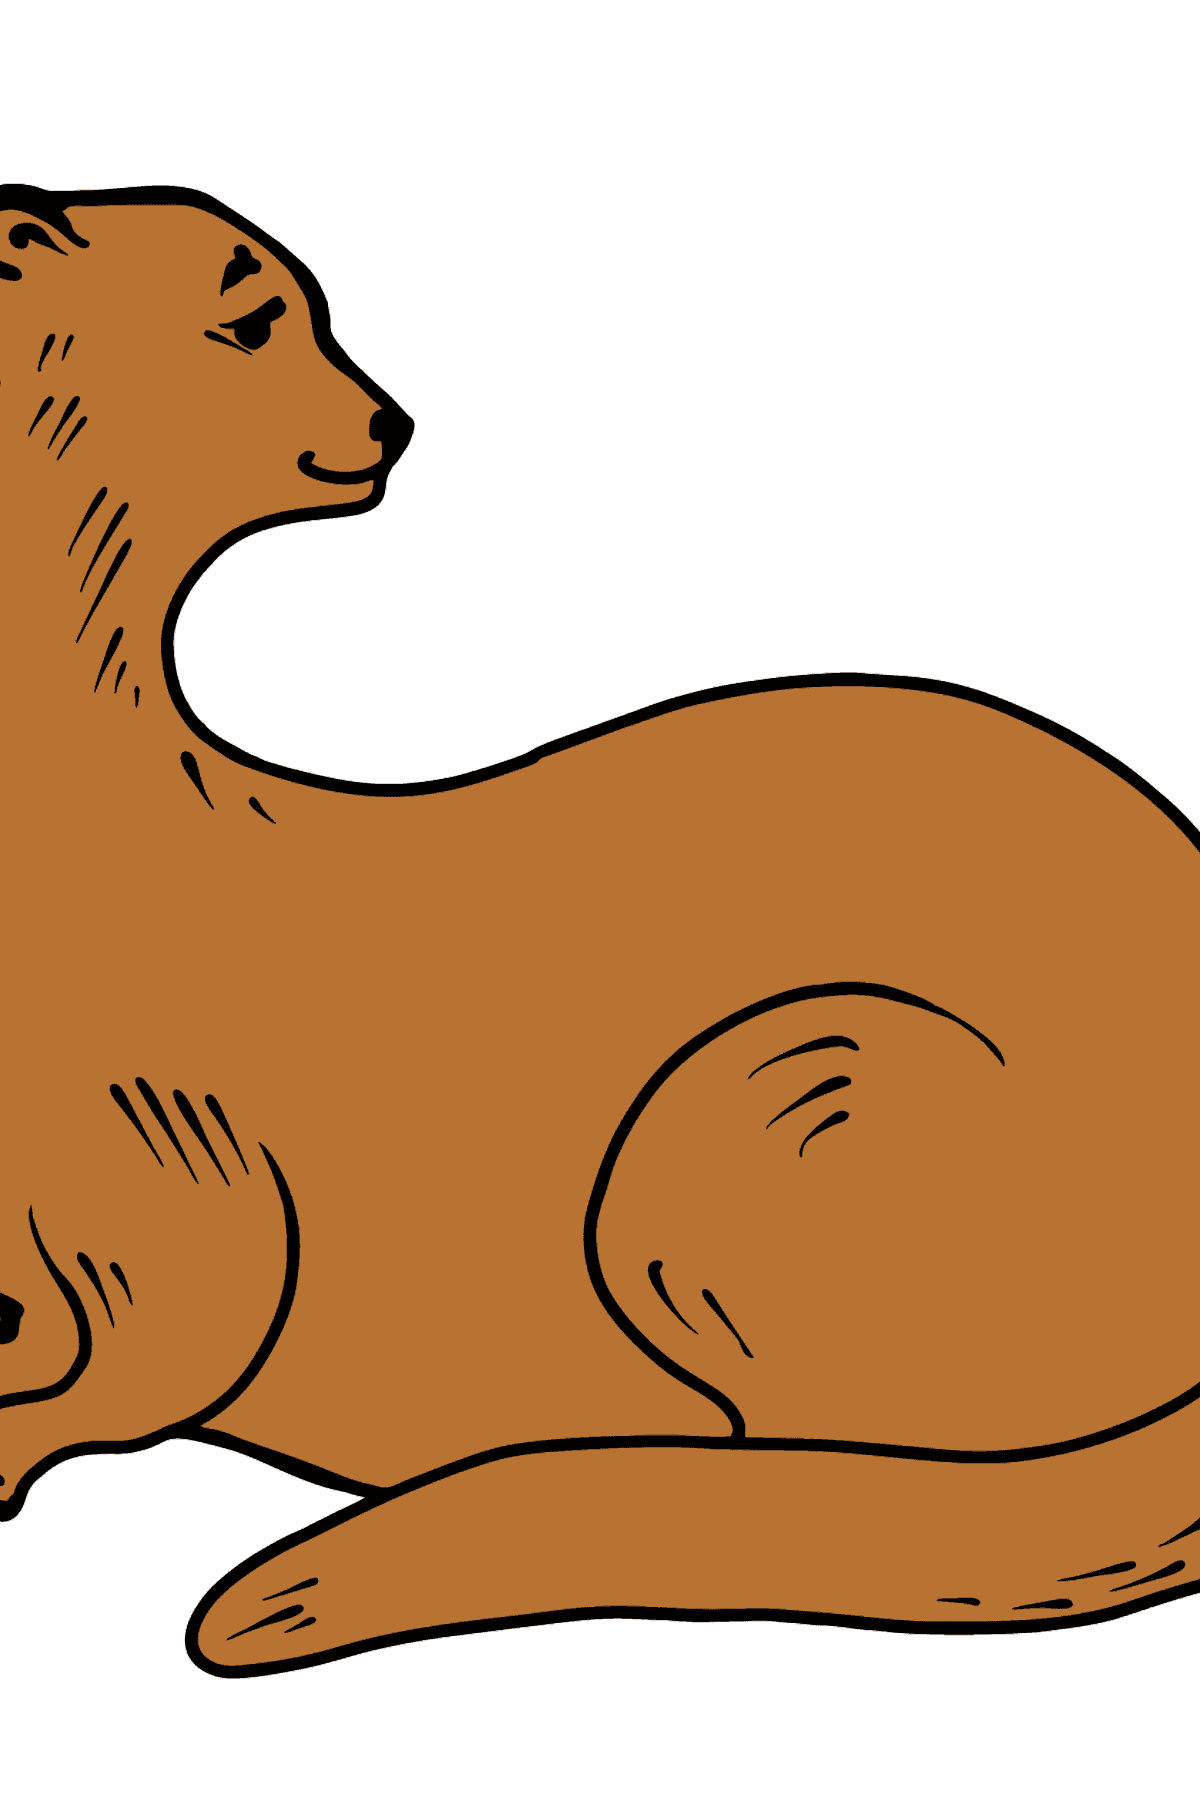 Otter coloring page - Coloring Pages for Kids